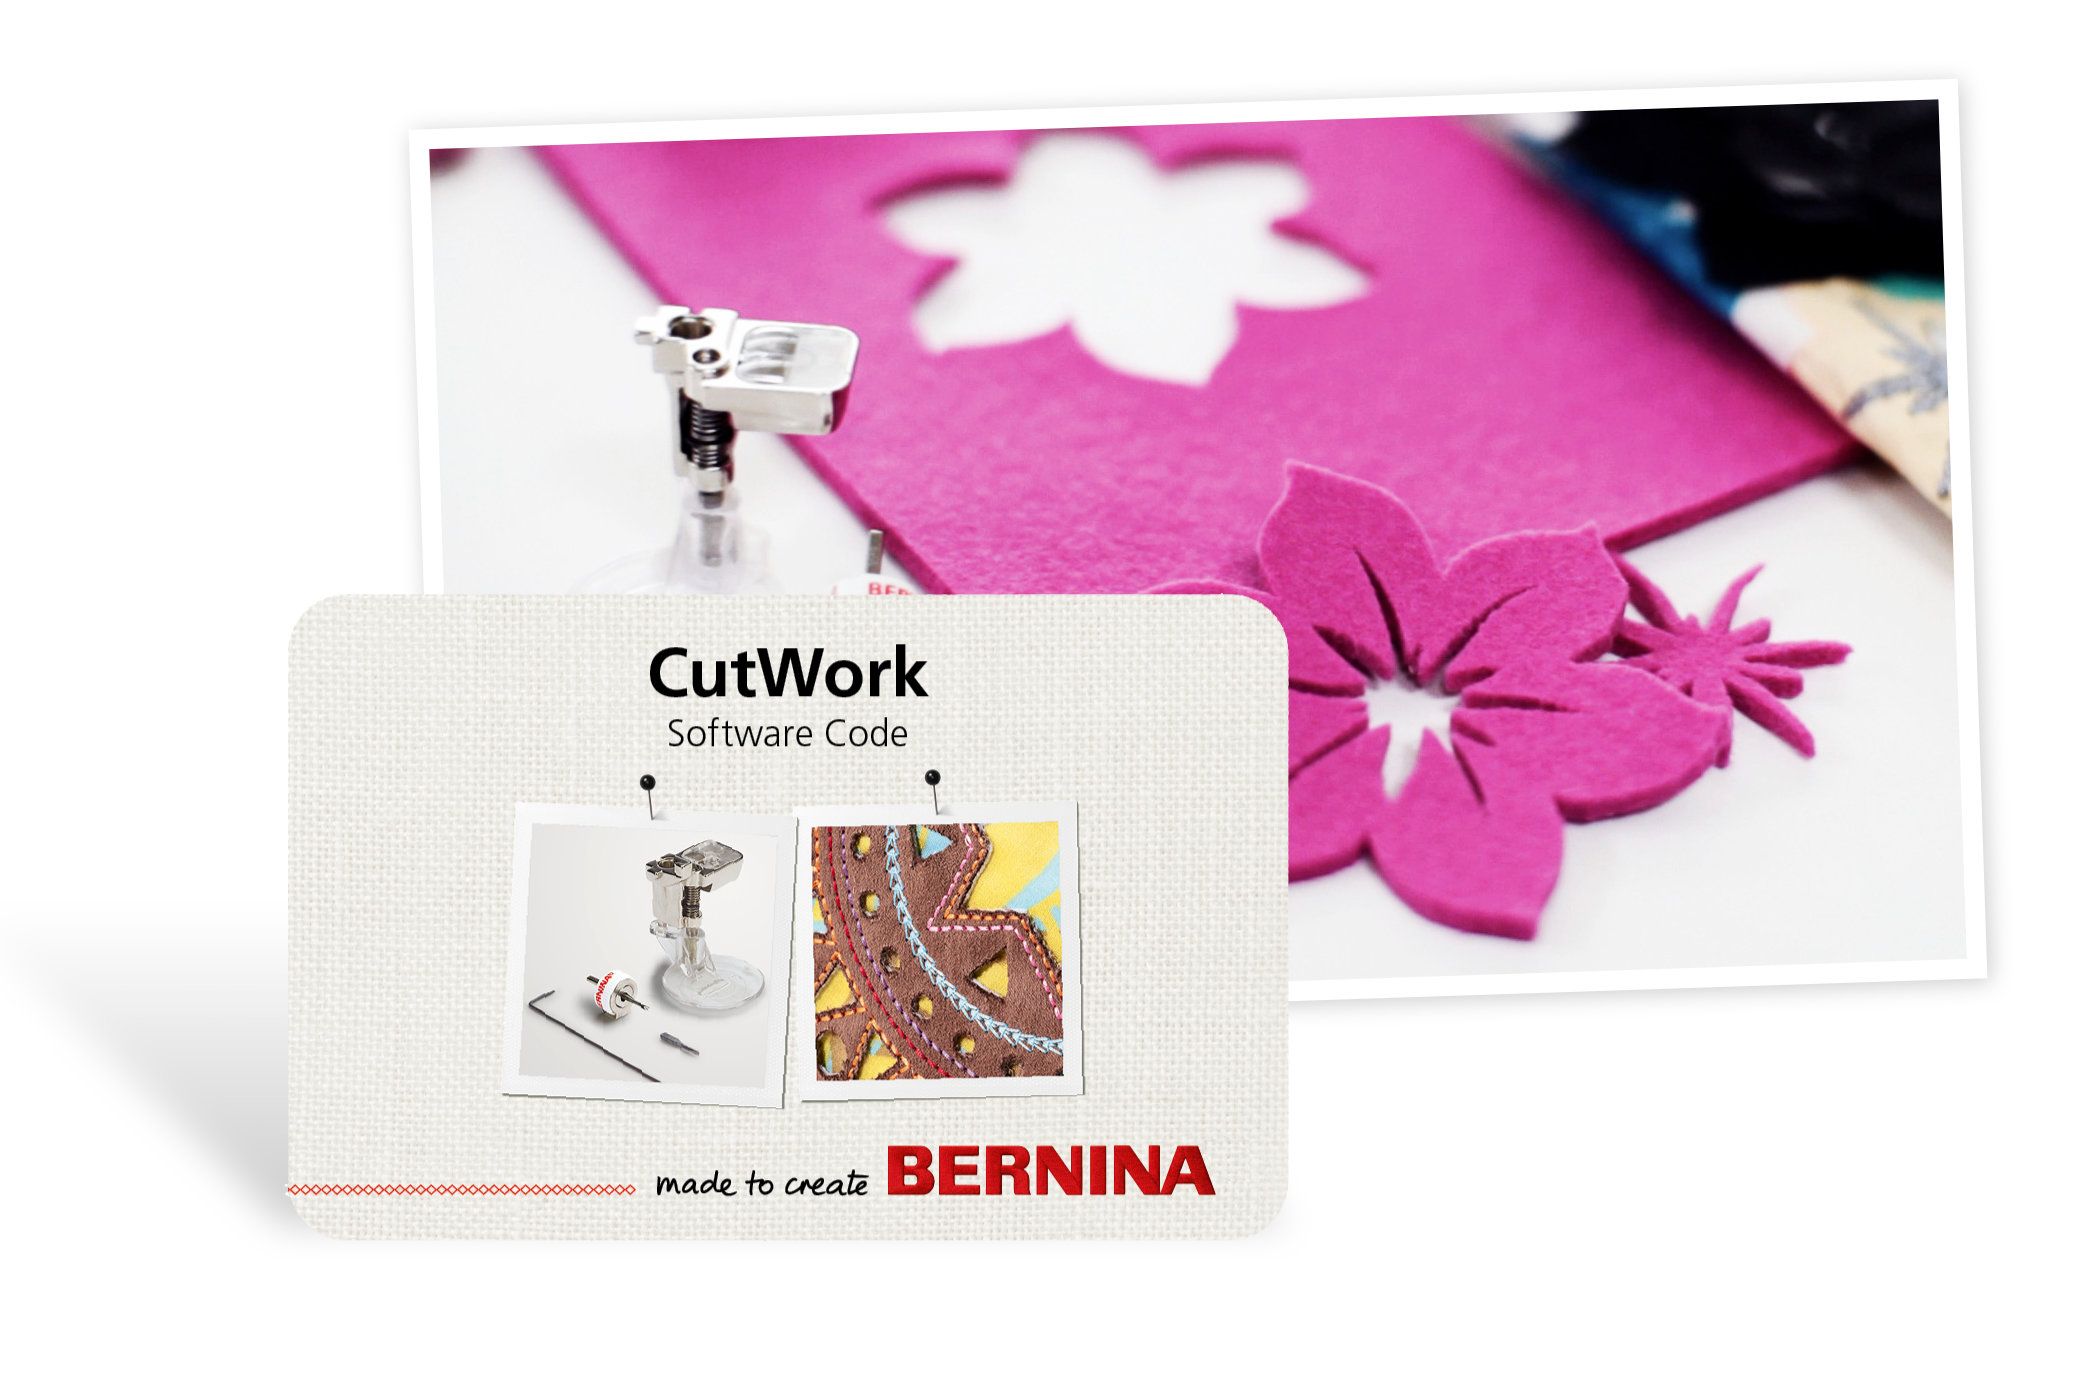 Bild: BERNINA CutWork Software